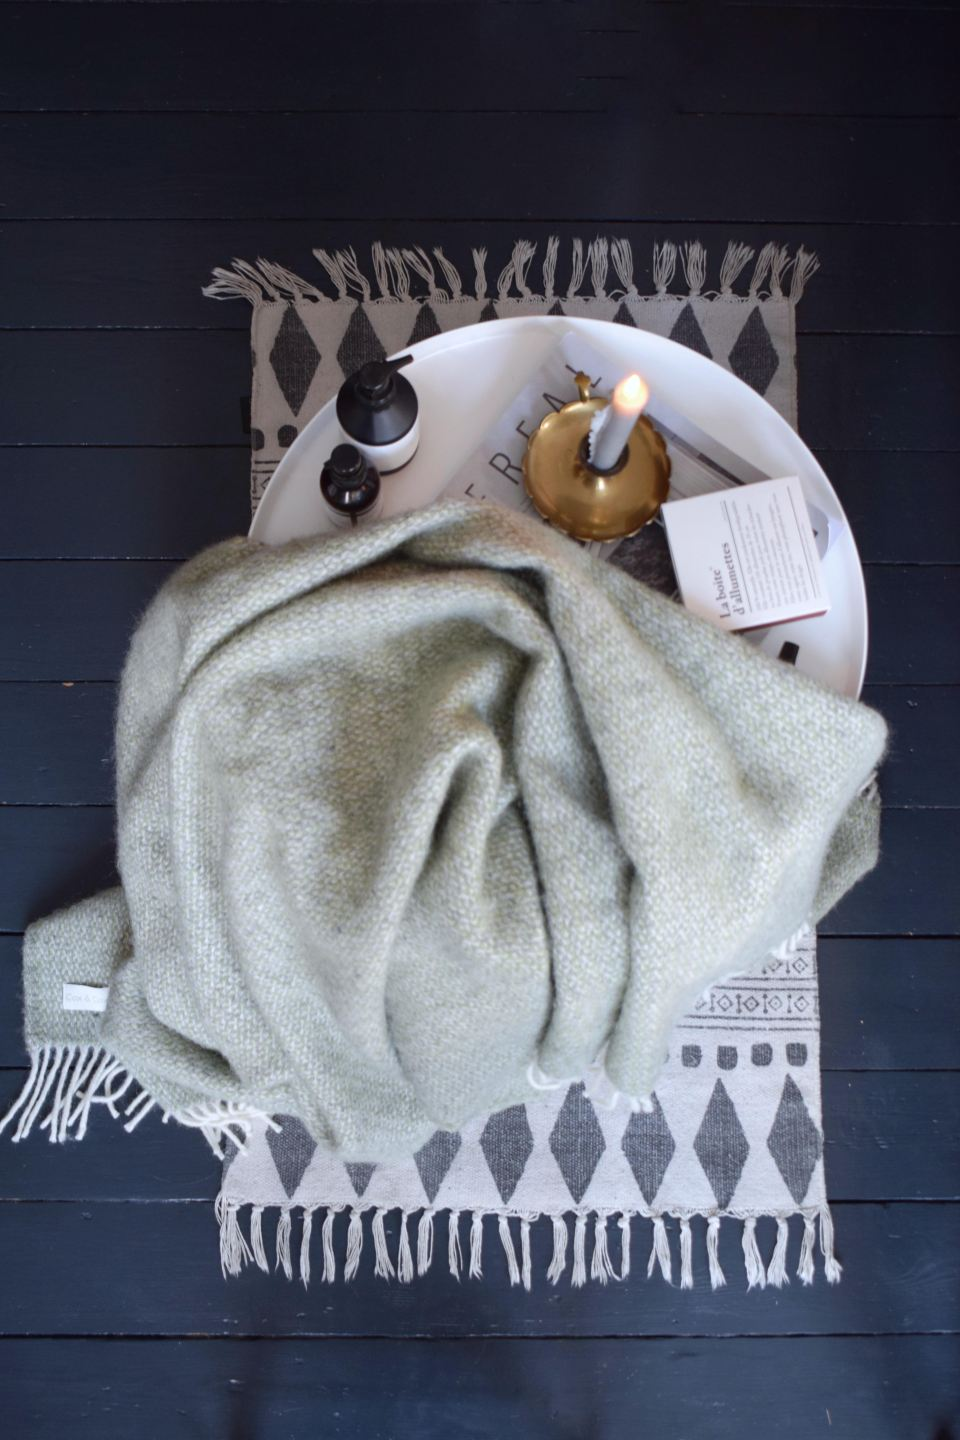 Woven knitted patterned blankets selection, colourful scandinavian bohemian modern style interiors ideas and inspiration